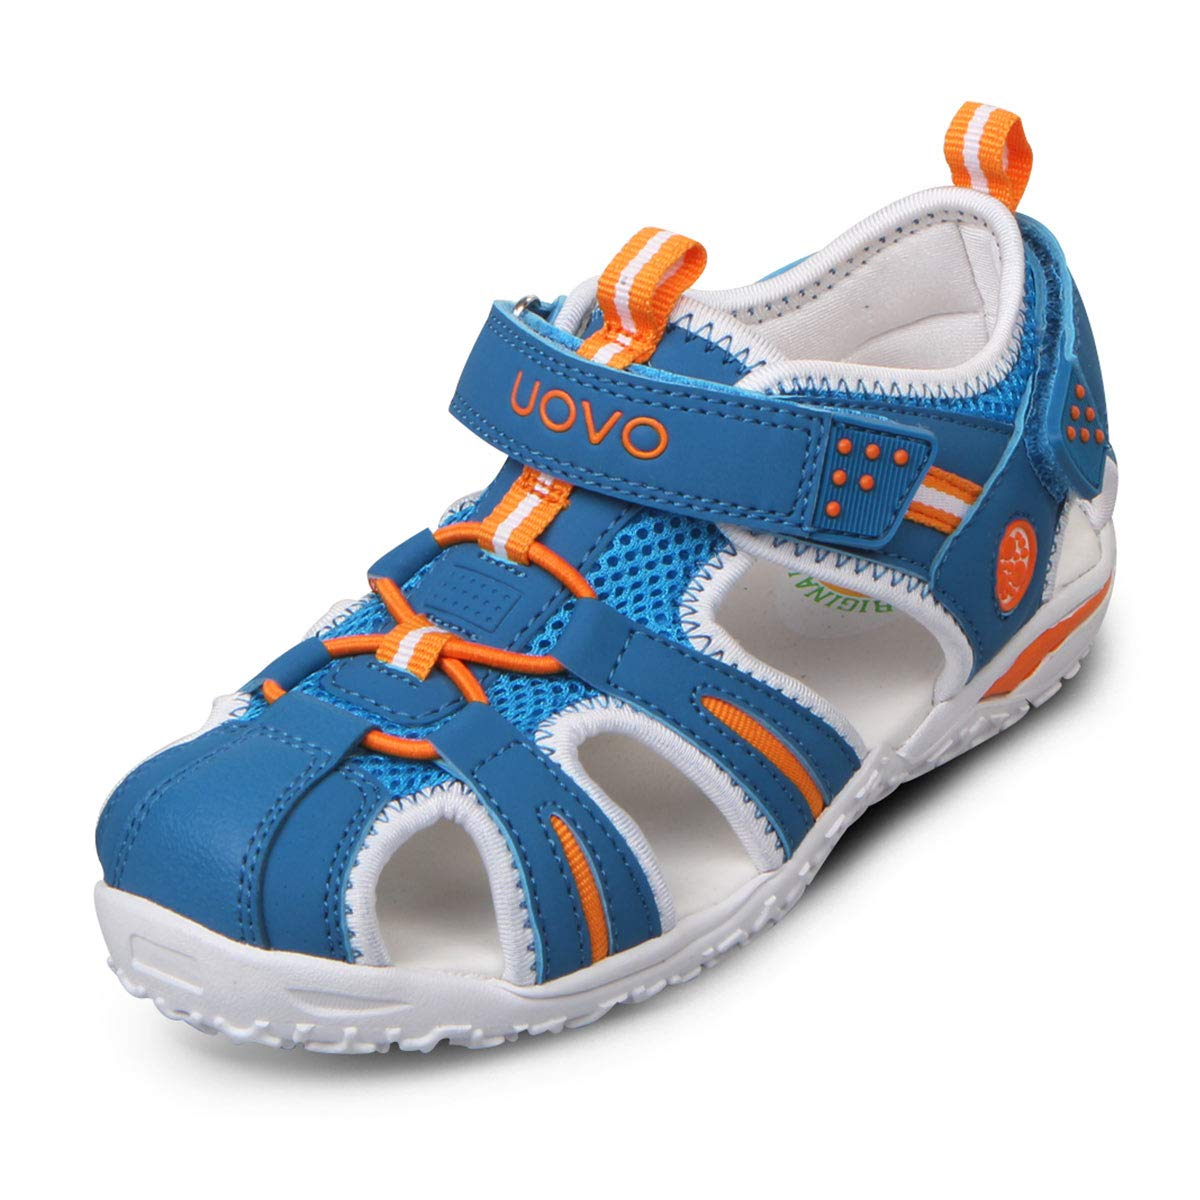 UOVO Boys Sandals Hiking Athletic Closed-Toe Beach Sandals Kids Summer Shoes (2 M US Little Kid, Blue-2)